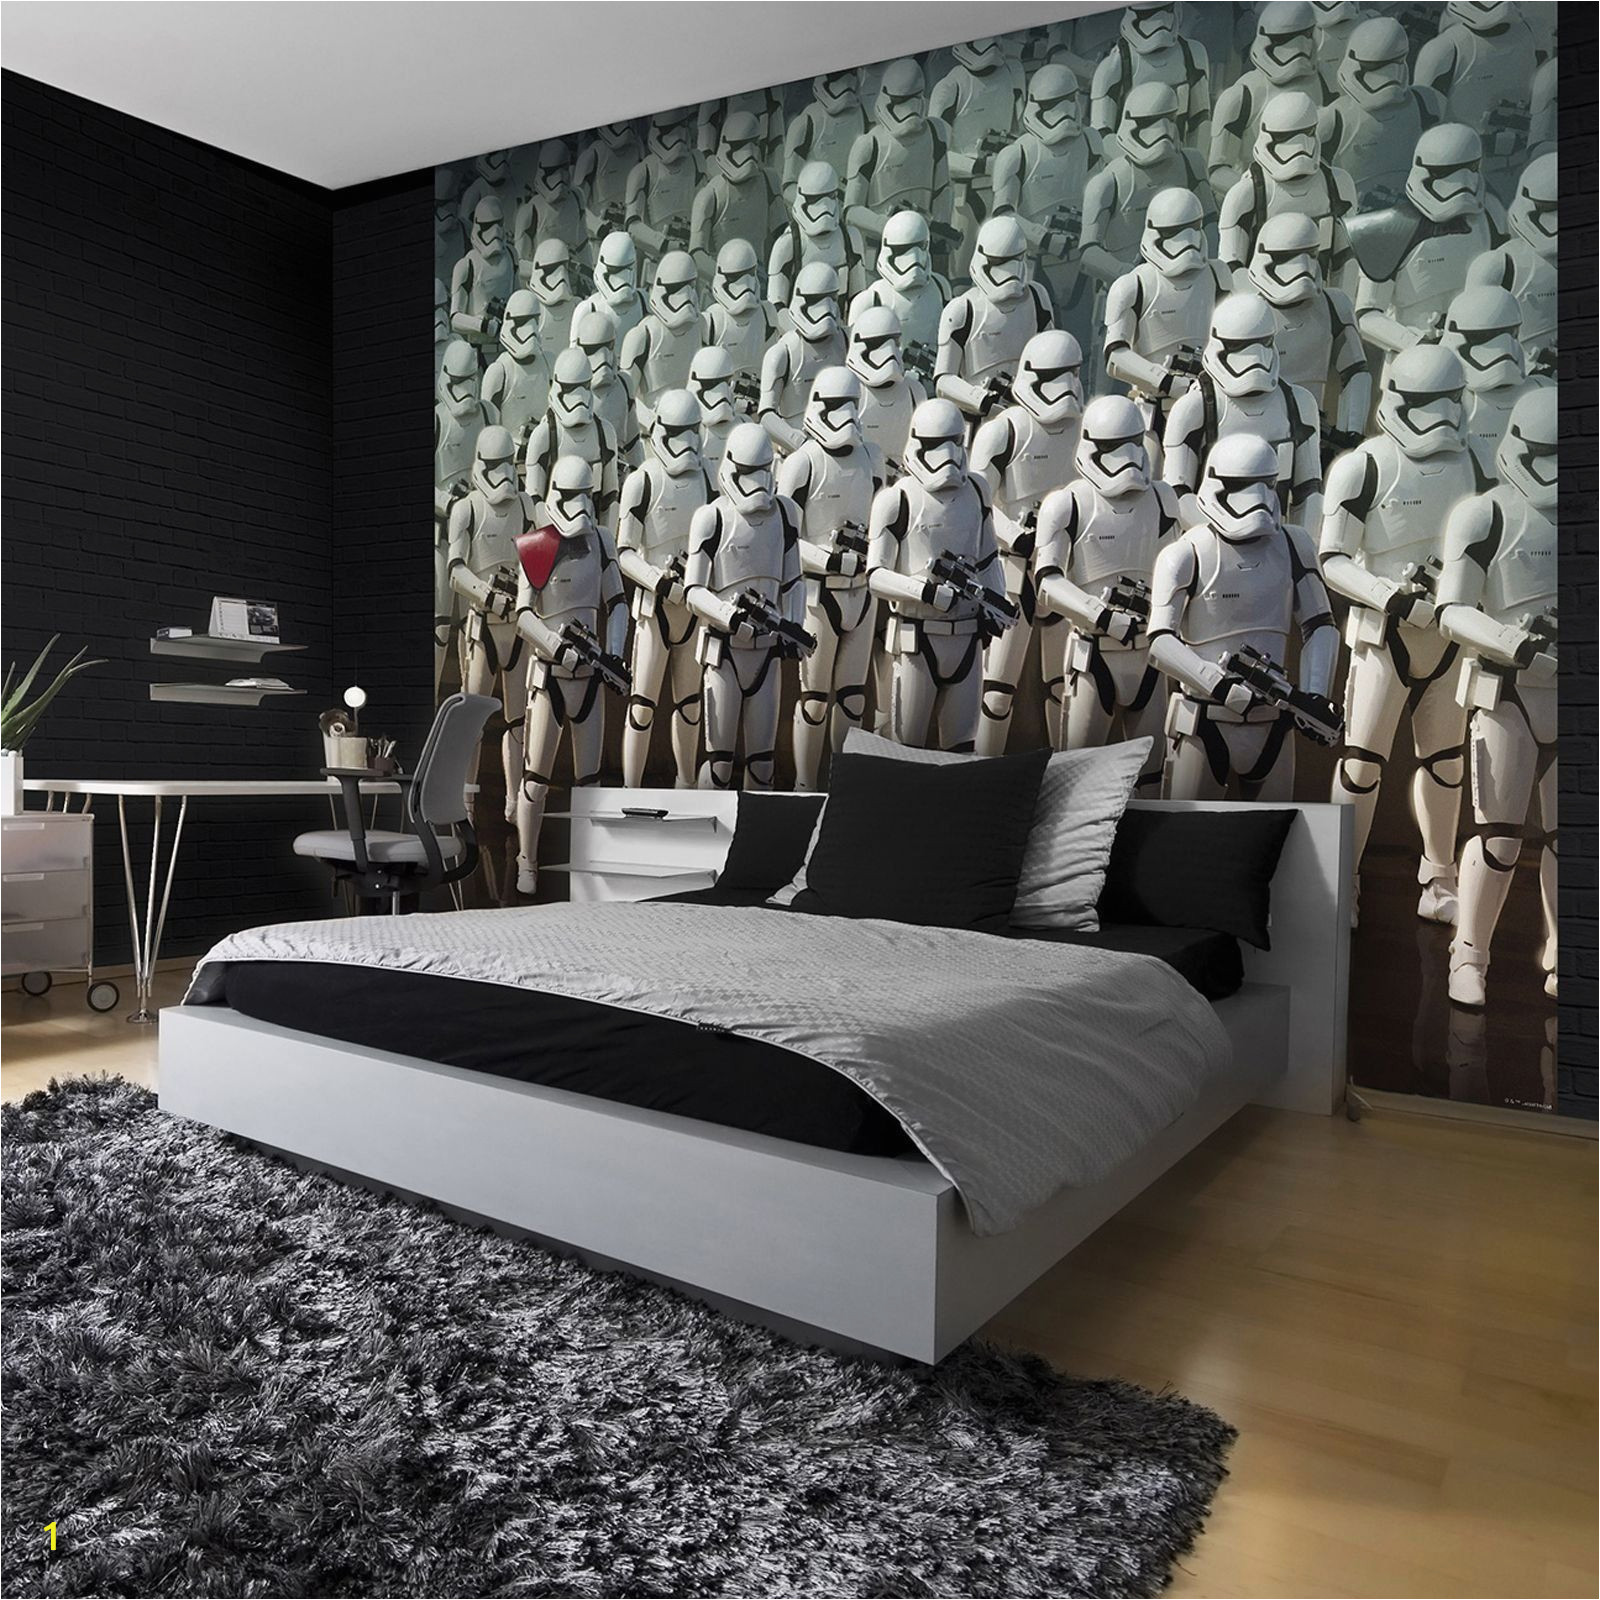 Wall Art Wallpaper Murals Uk Star Wars Stormtrooper Wall Mural Dream Bedroom …